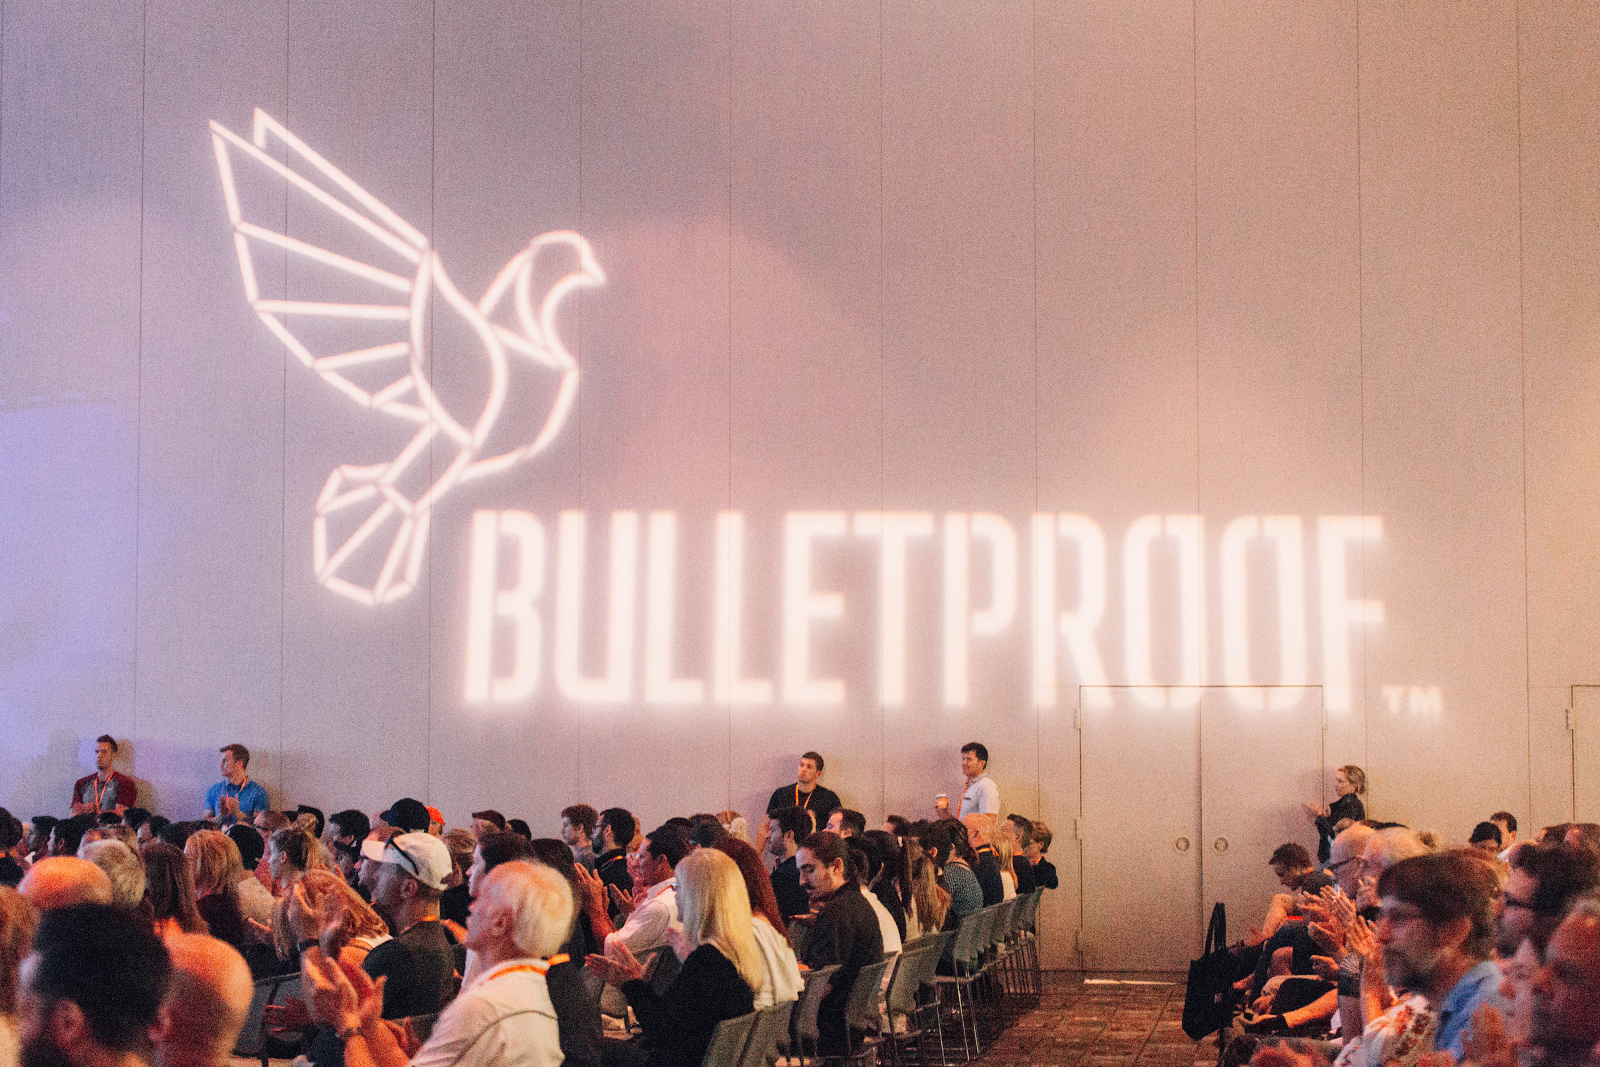 Bulletproof 2017 conference LiveO2